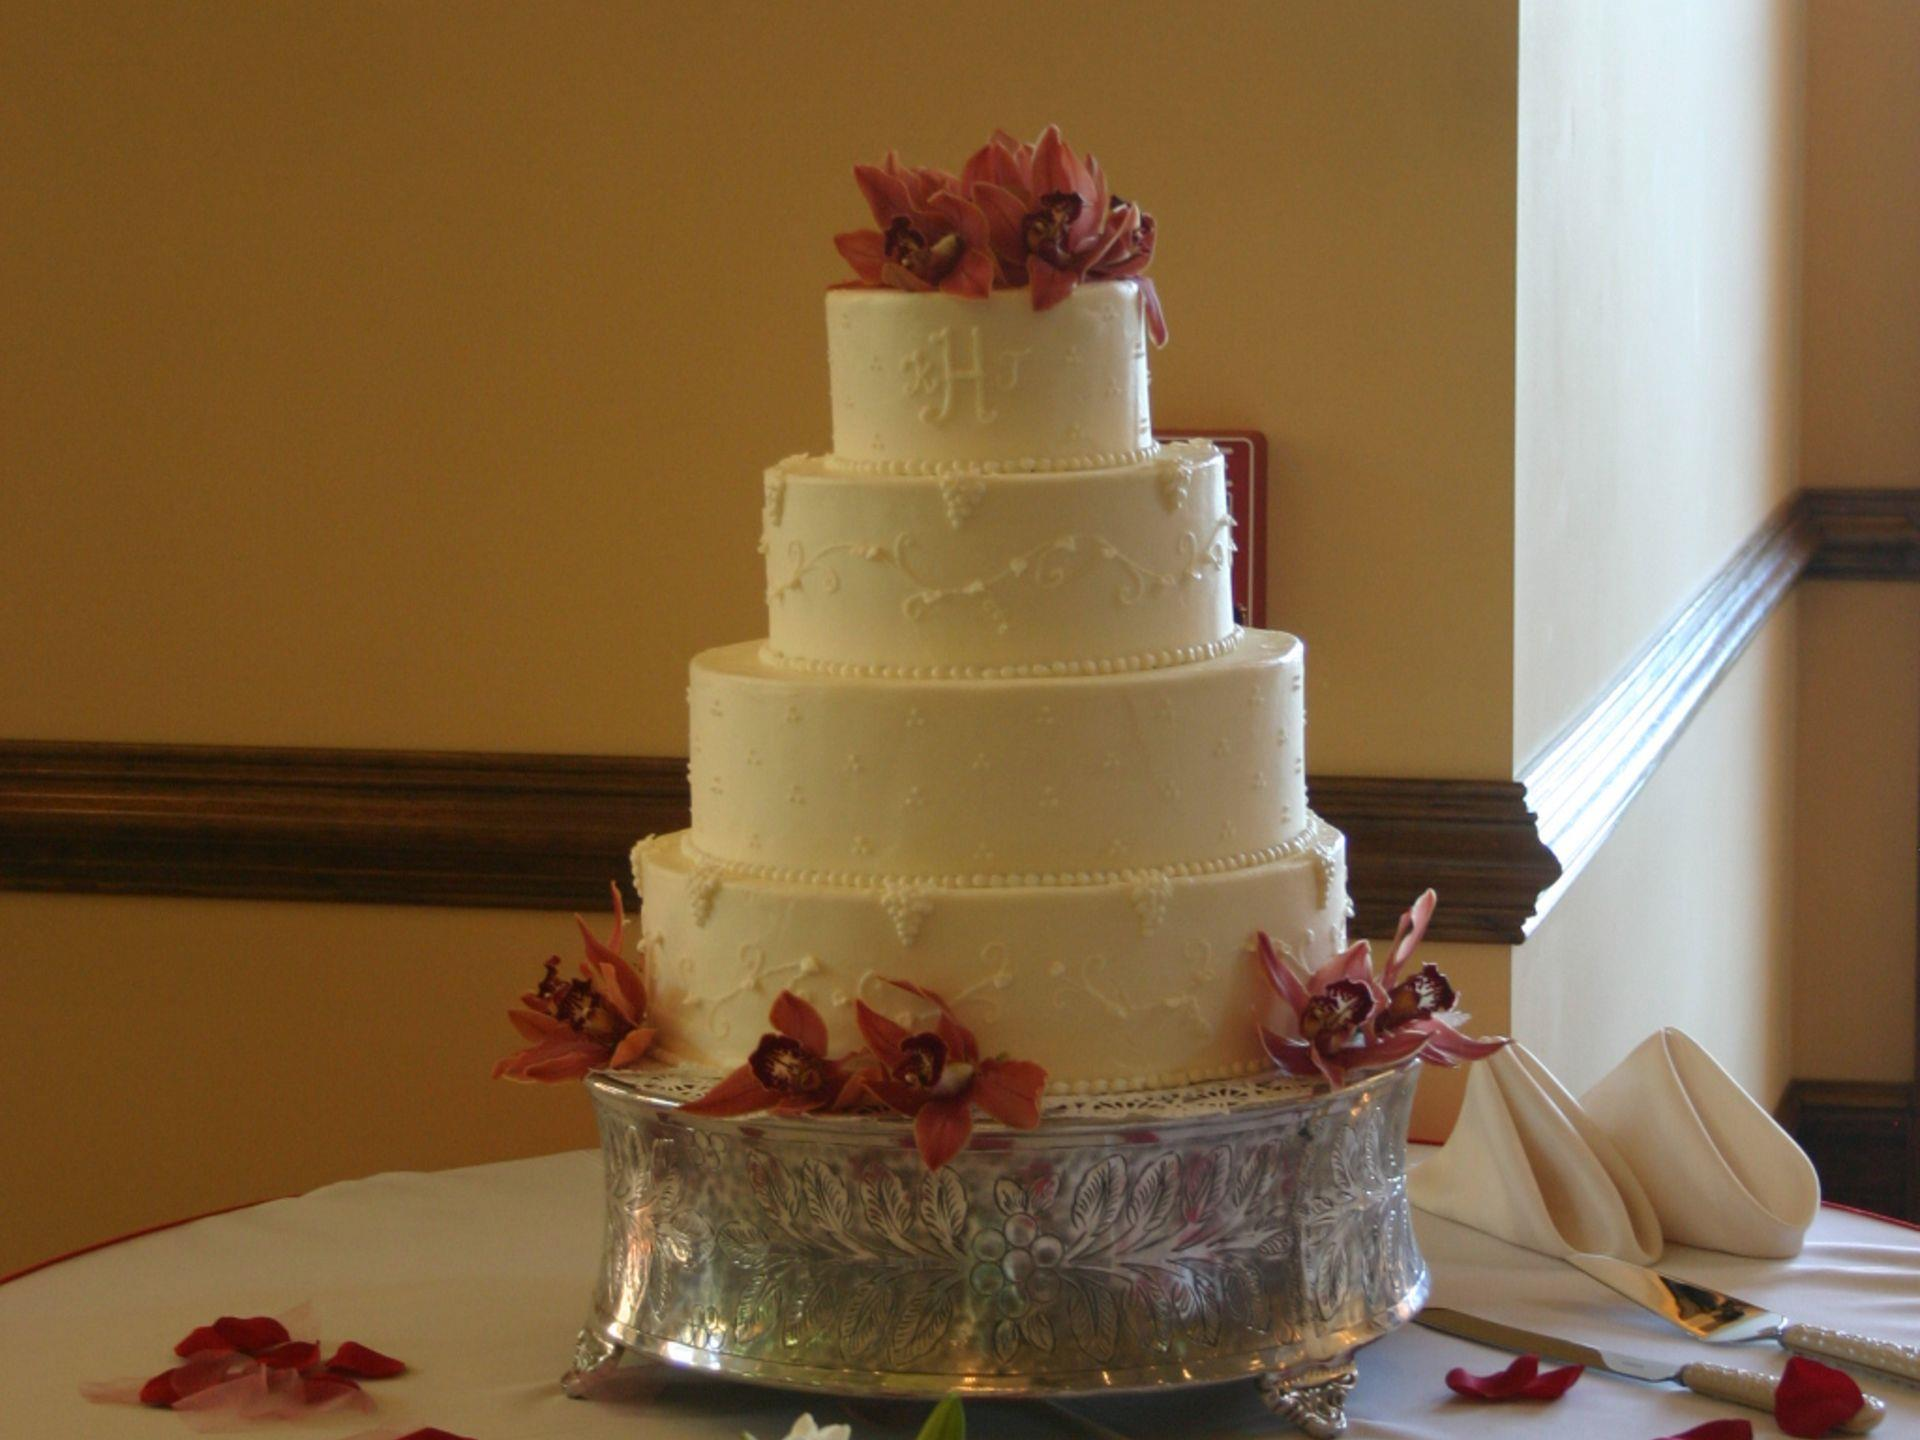 Multi-tier wedding cake